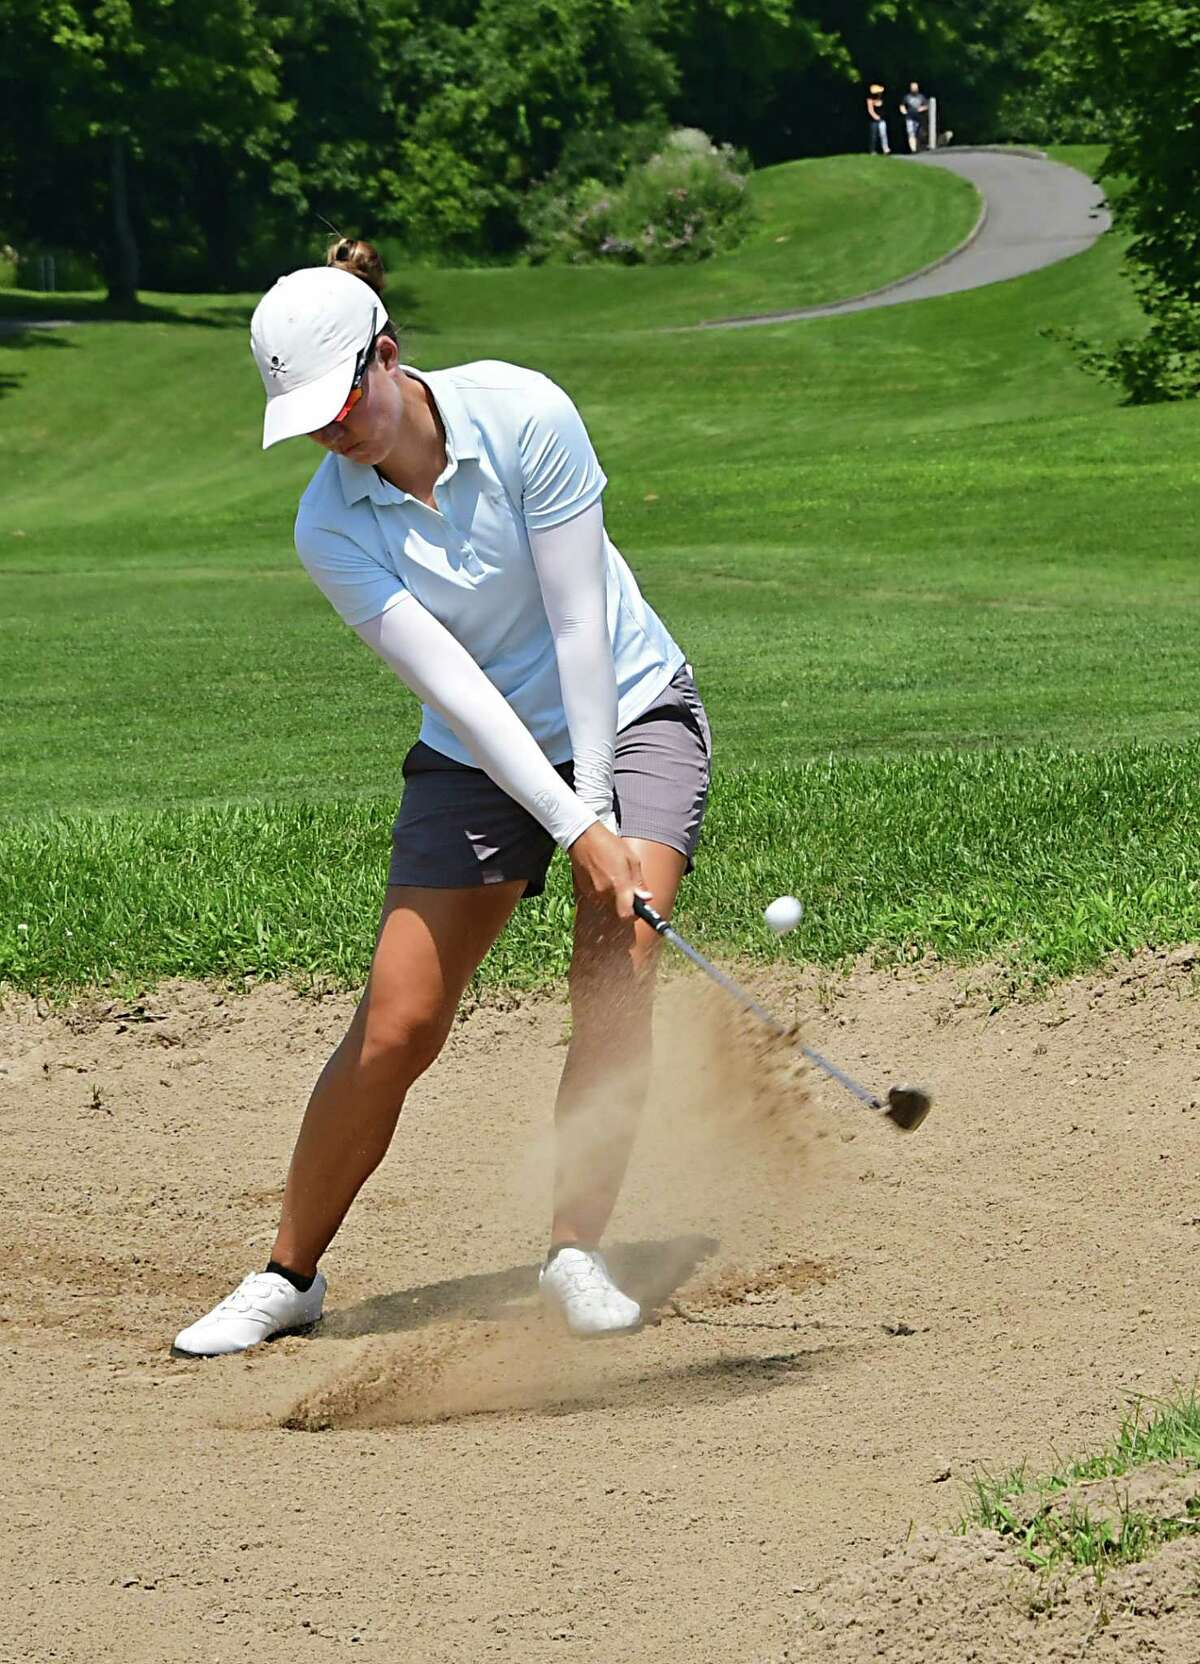 Vicky Hurst of Melbourne, FL hits her ball out of the bunker during the first round of the CDPHP Open, a 54-hole Symetra Tour at Capital Hills Golf Course on Friday, July 26, 2019 in Albany, N.Y. (Lori Van Buren/Times Union)